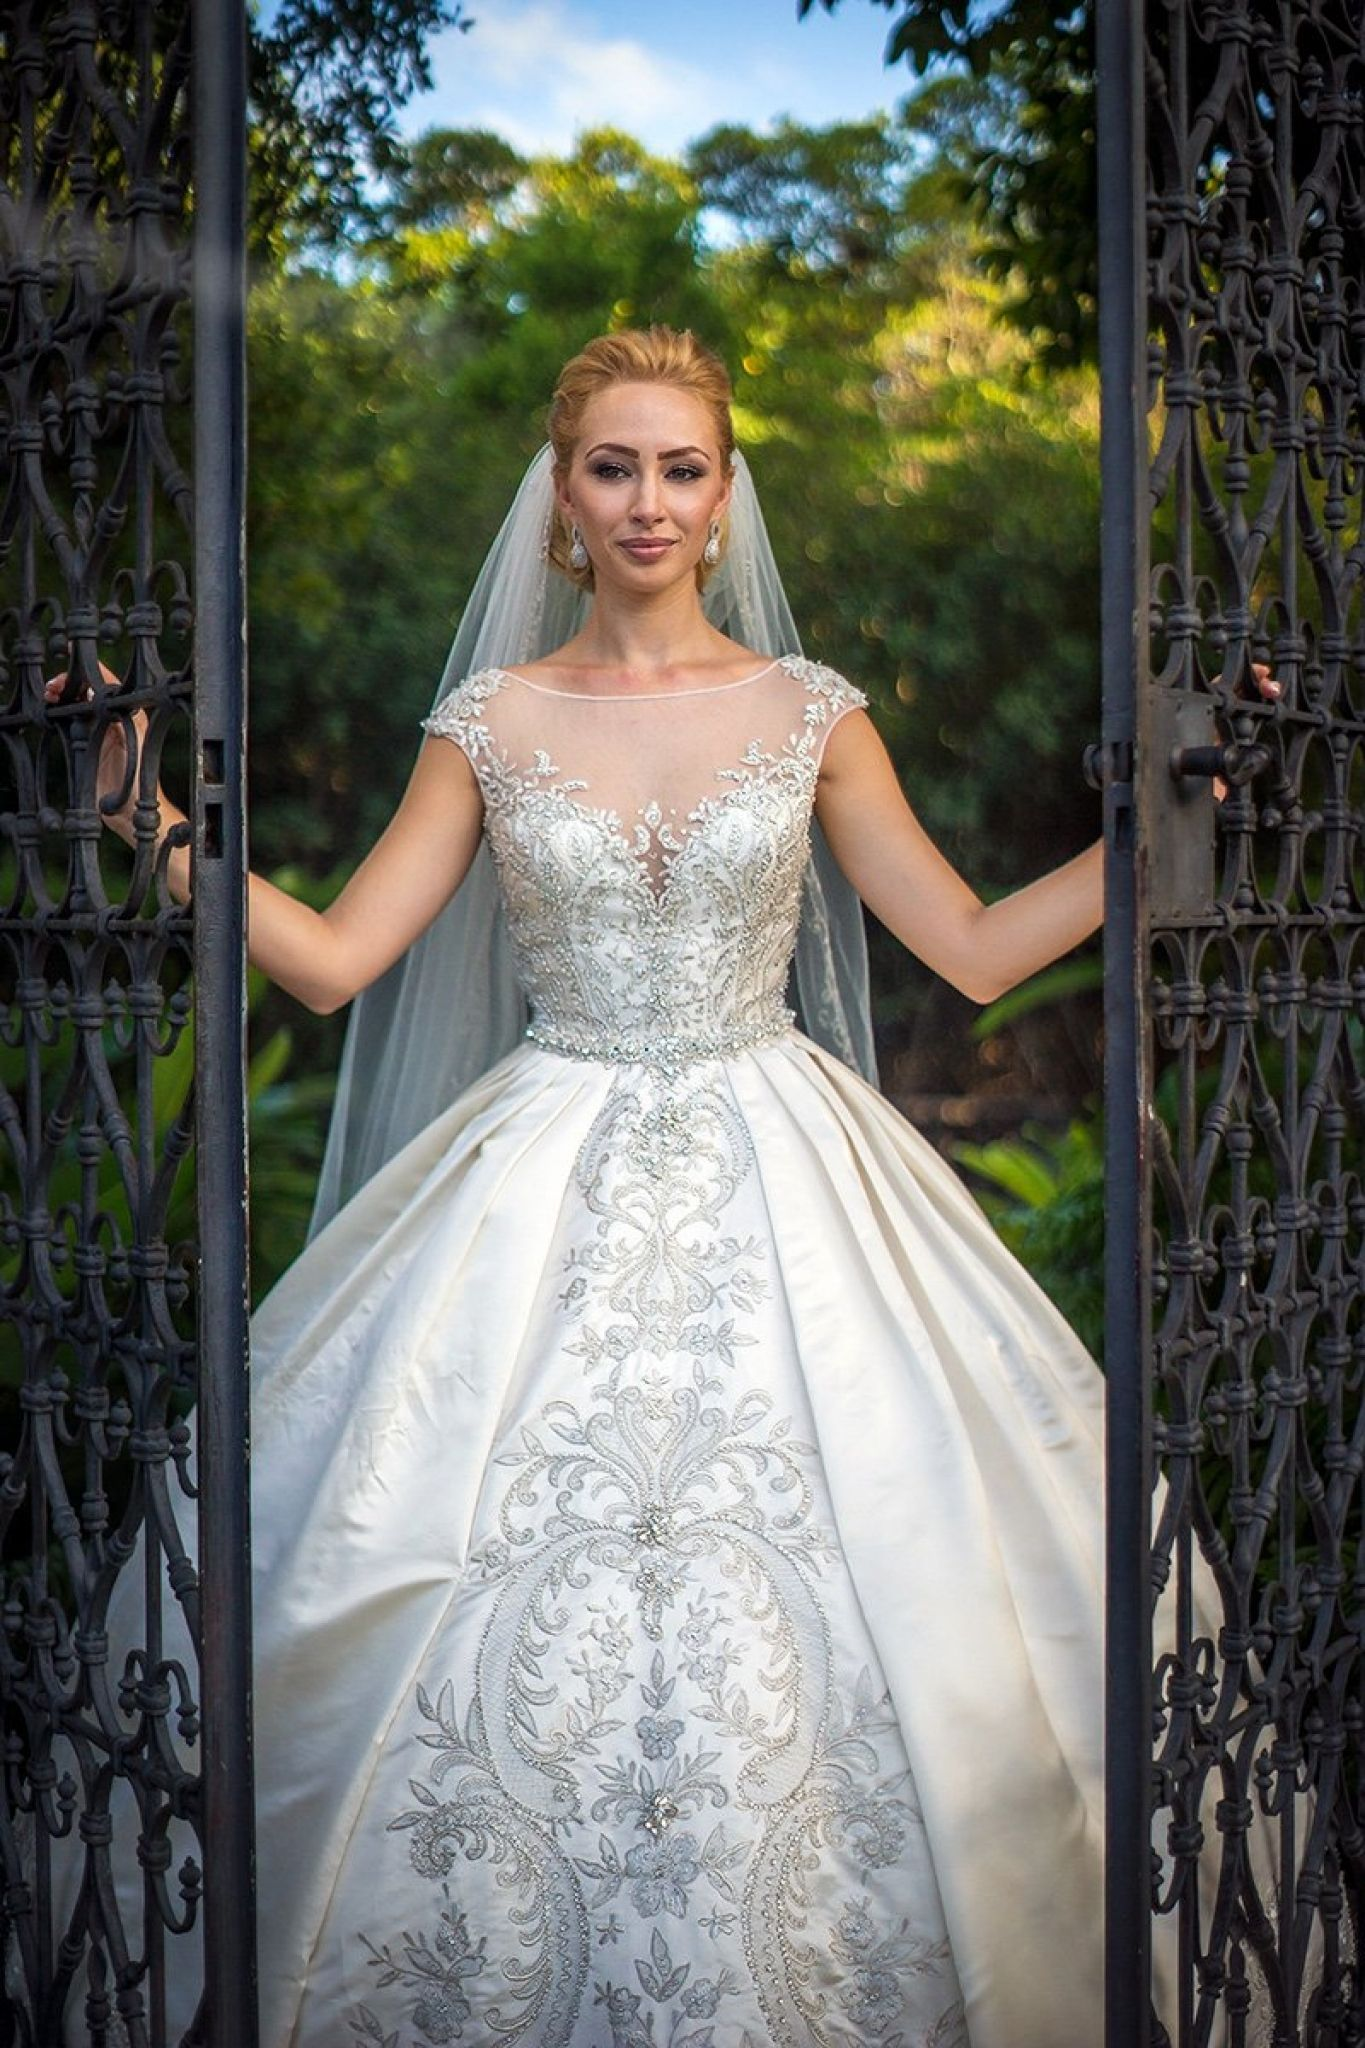 Wedding dress for older bride  Pin by Annora on Popular Wedding Dress  Pinterest  Wedding dress